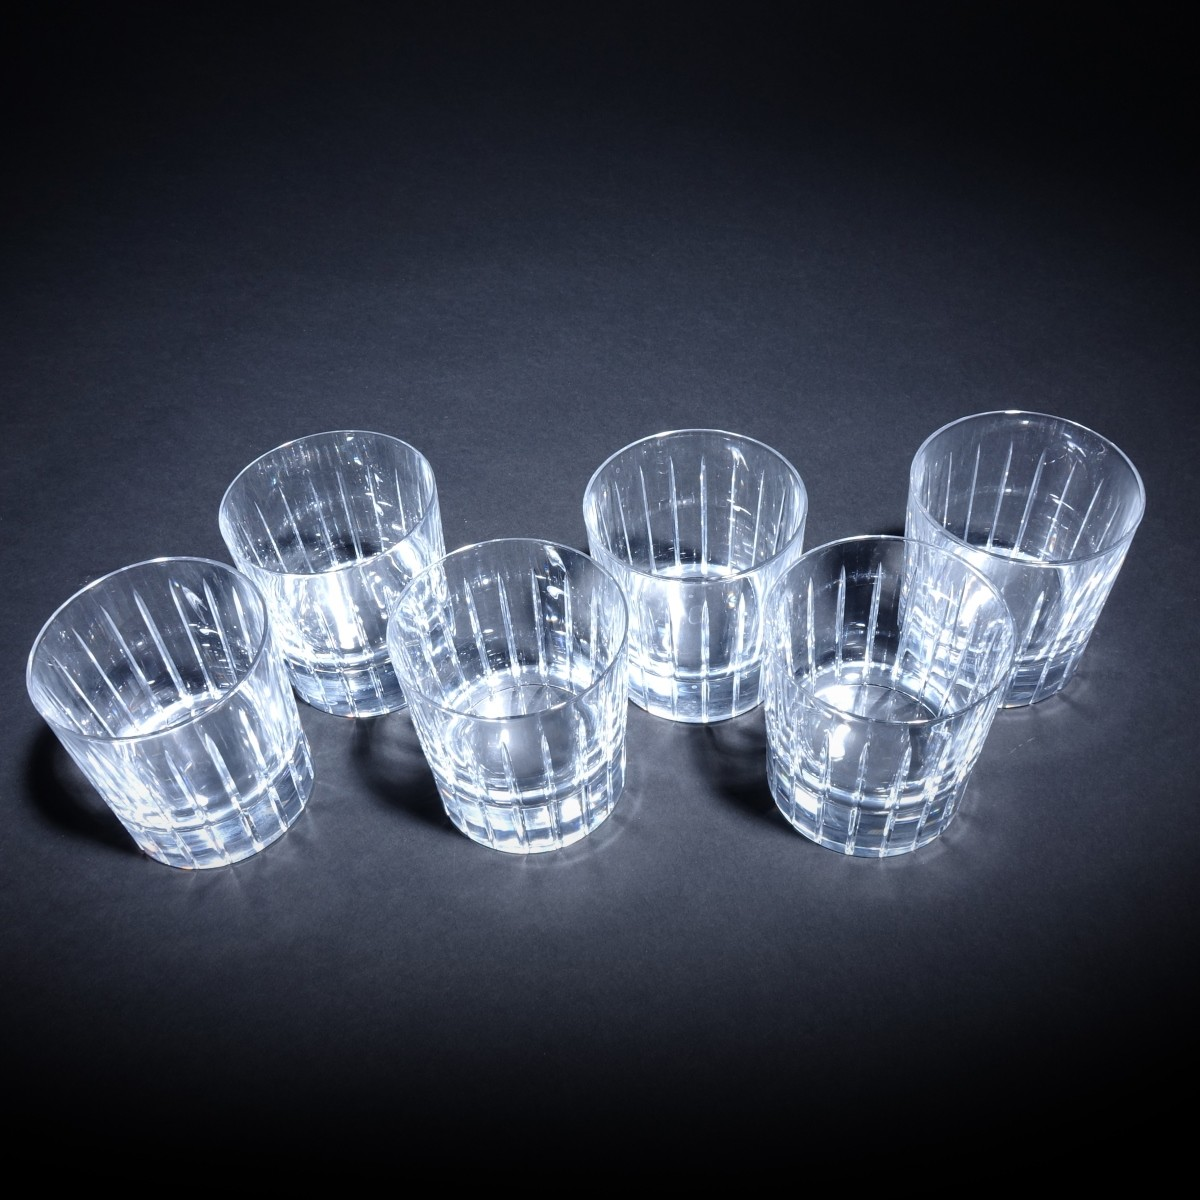 6 Christofle Iriana Double Old Fashion Glasses